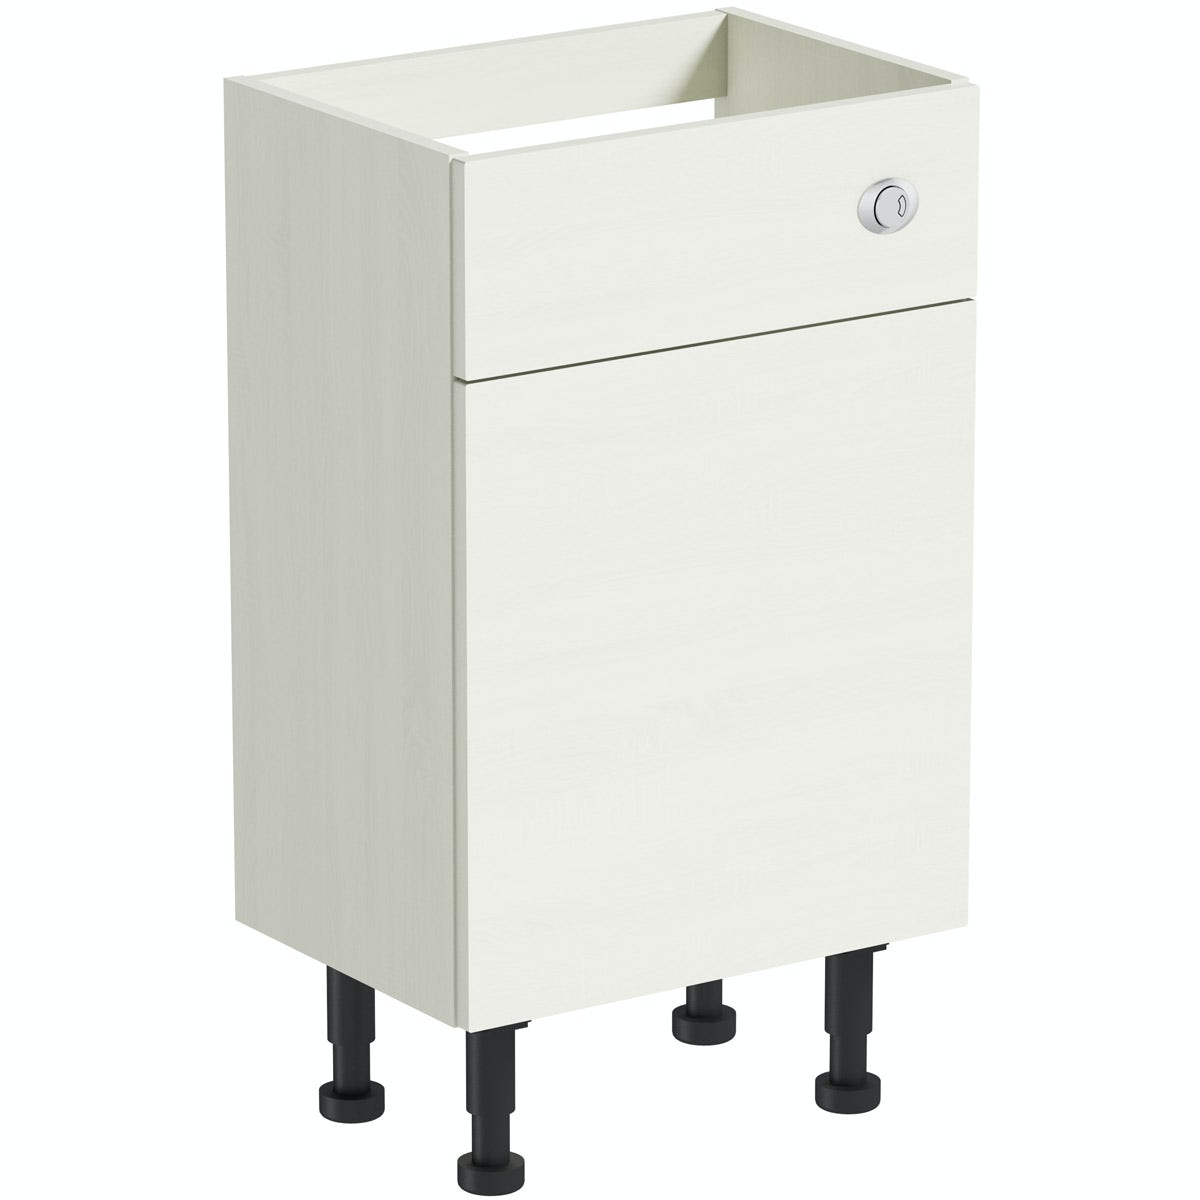 The Bath Co. Newbury white BTW unit 500mm